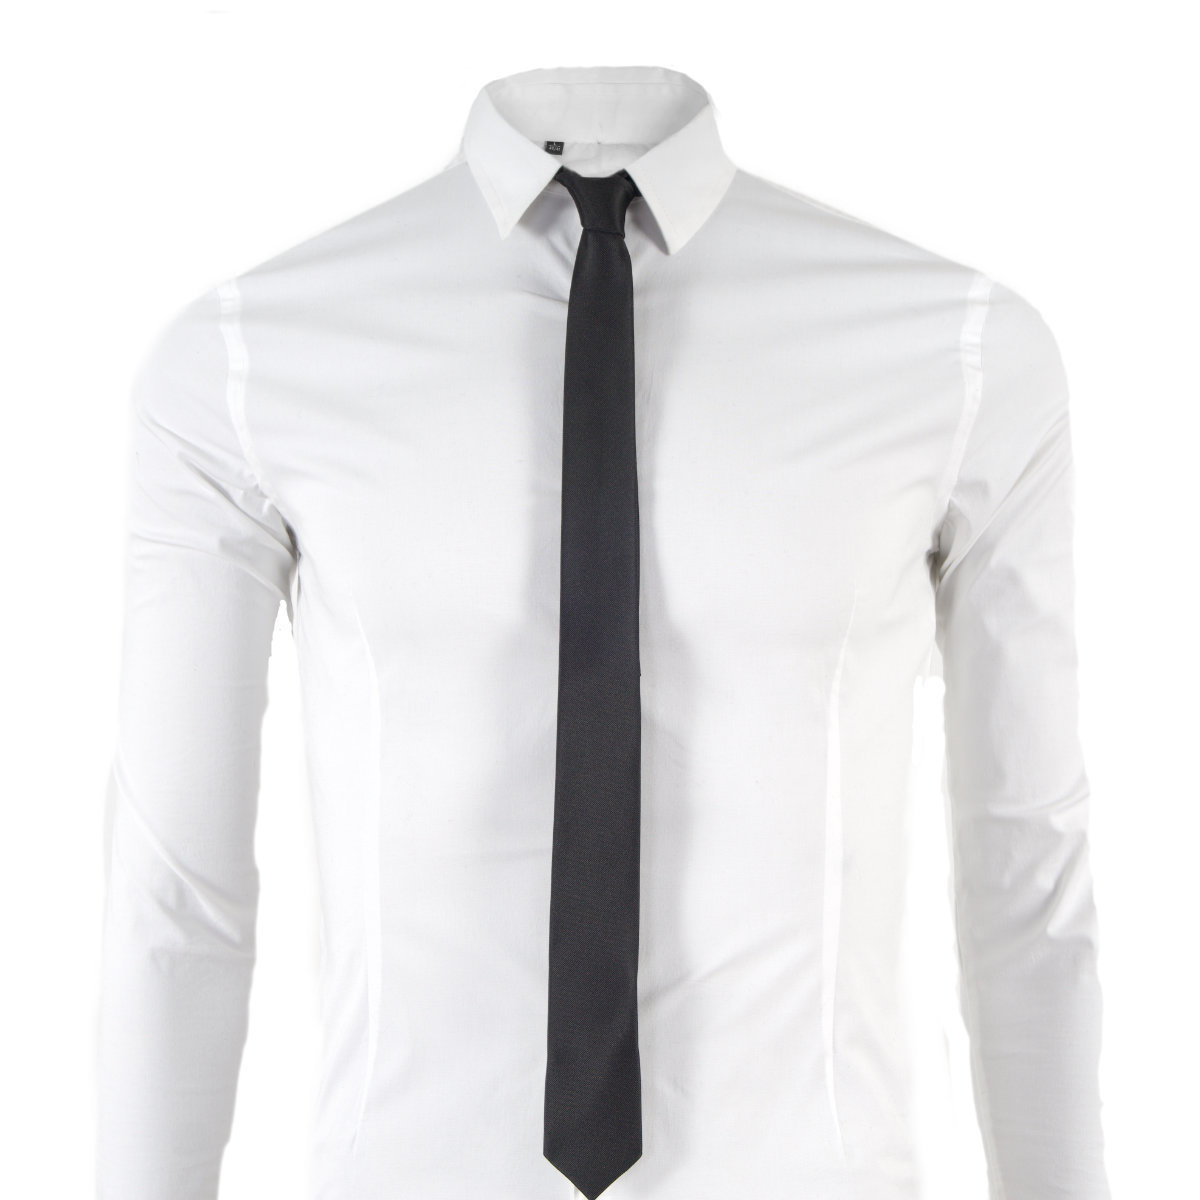 Zumo-Ties-TIE-DULL-Black